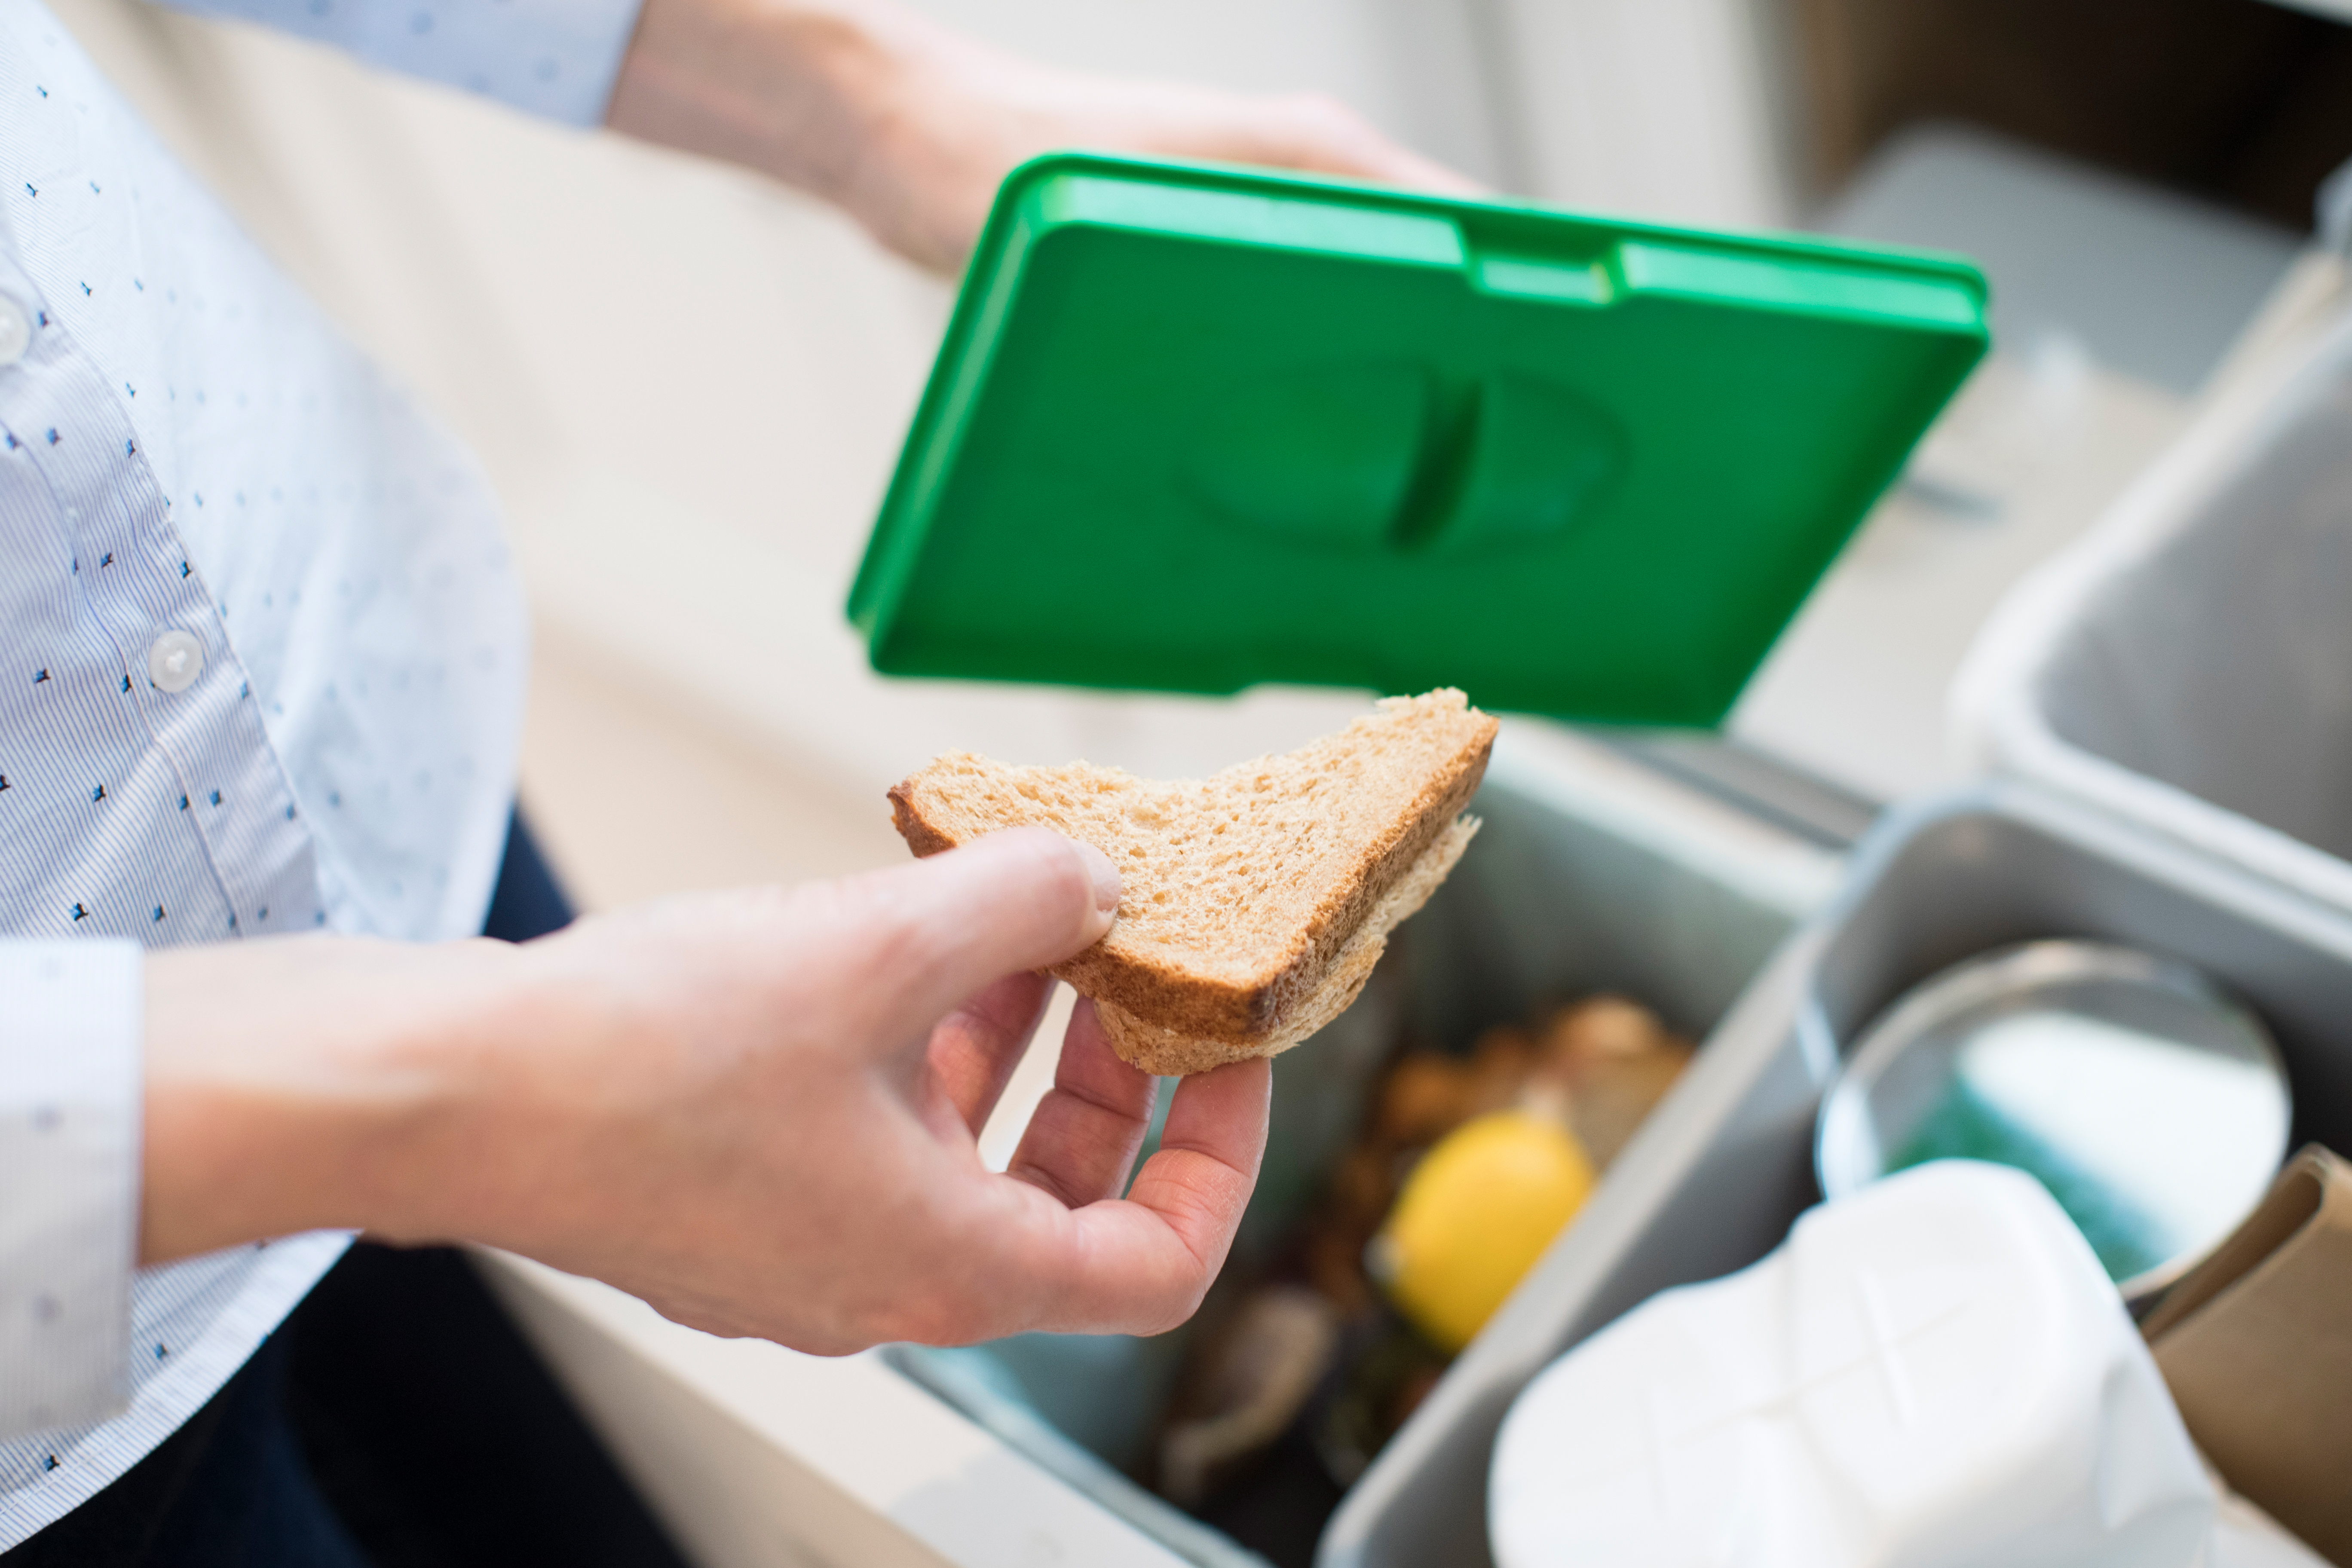 Consumer throwing out food